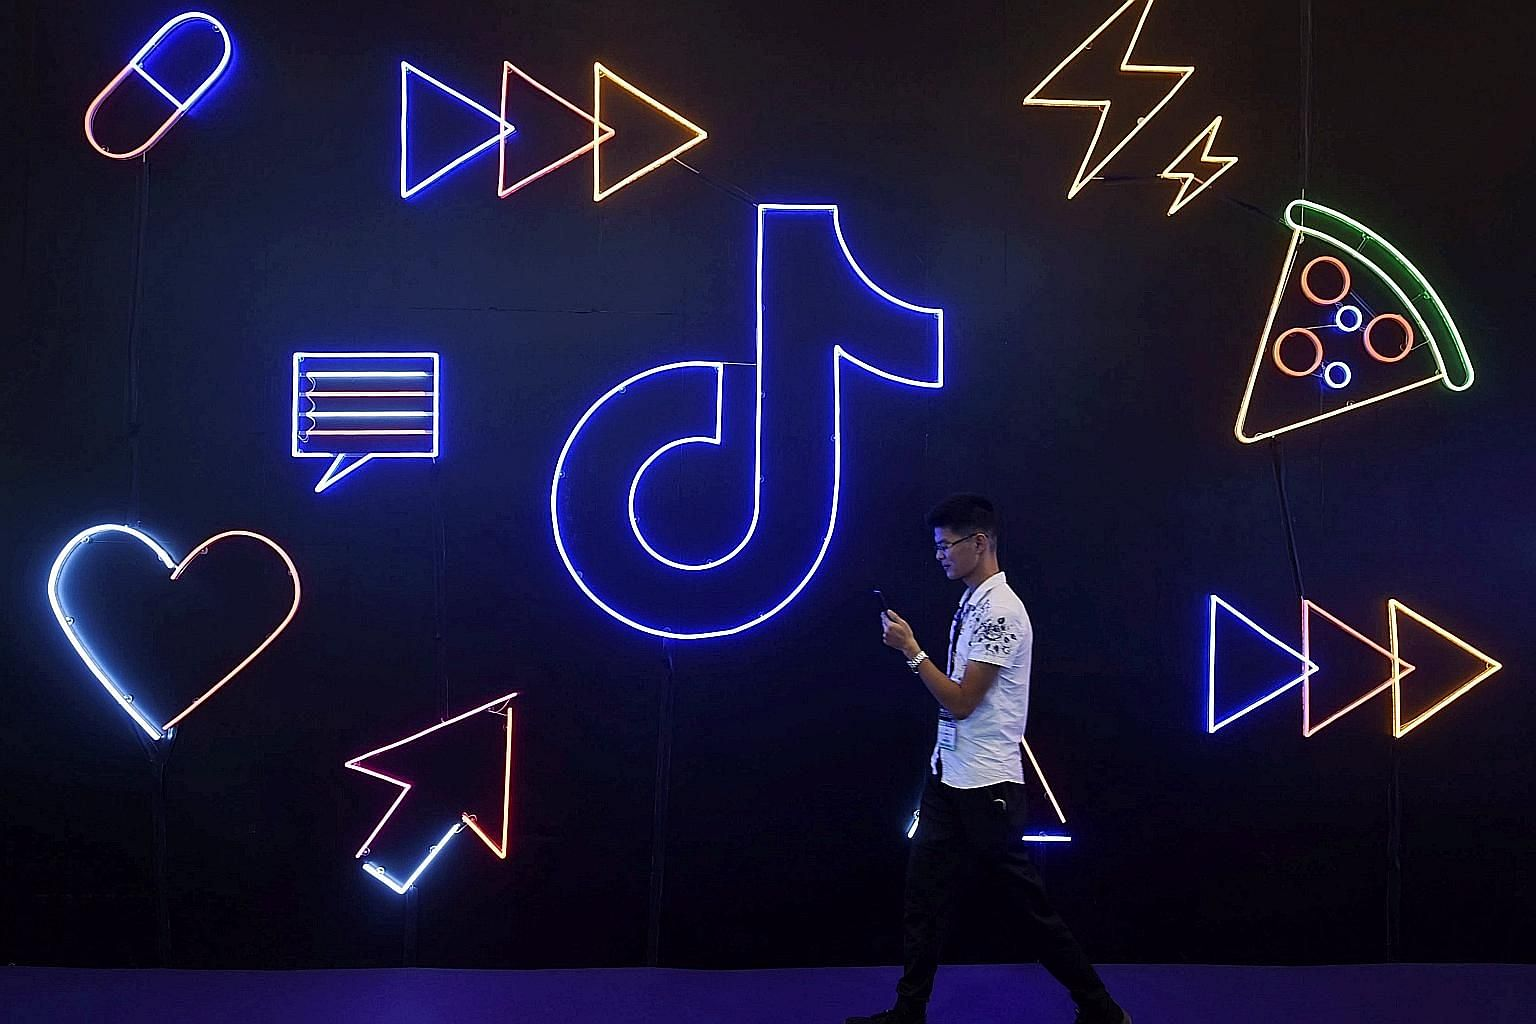 ByteDance's online video app TikTok has been downloaded about 1.45 billion times since launching. The Chinese start-up is part of a new generation of tech darlings that rose to the fore and now challenge their forebears.